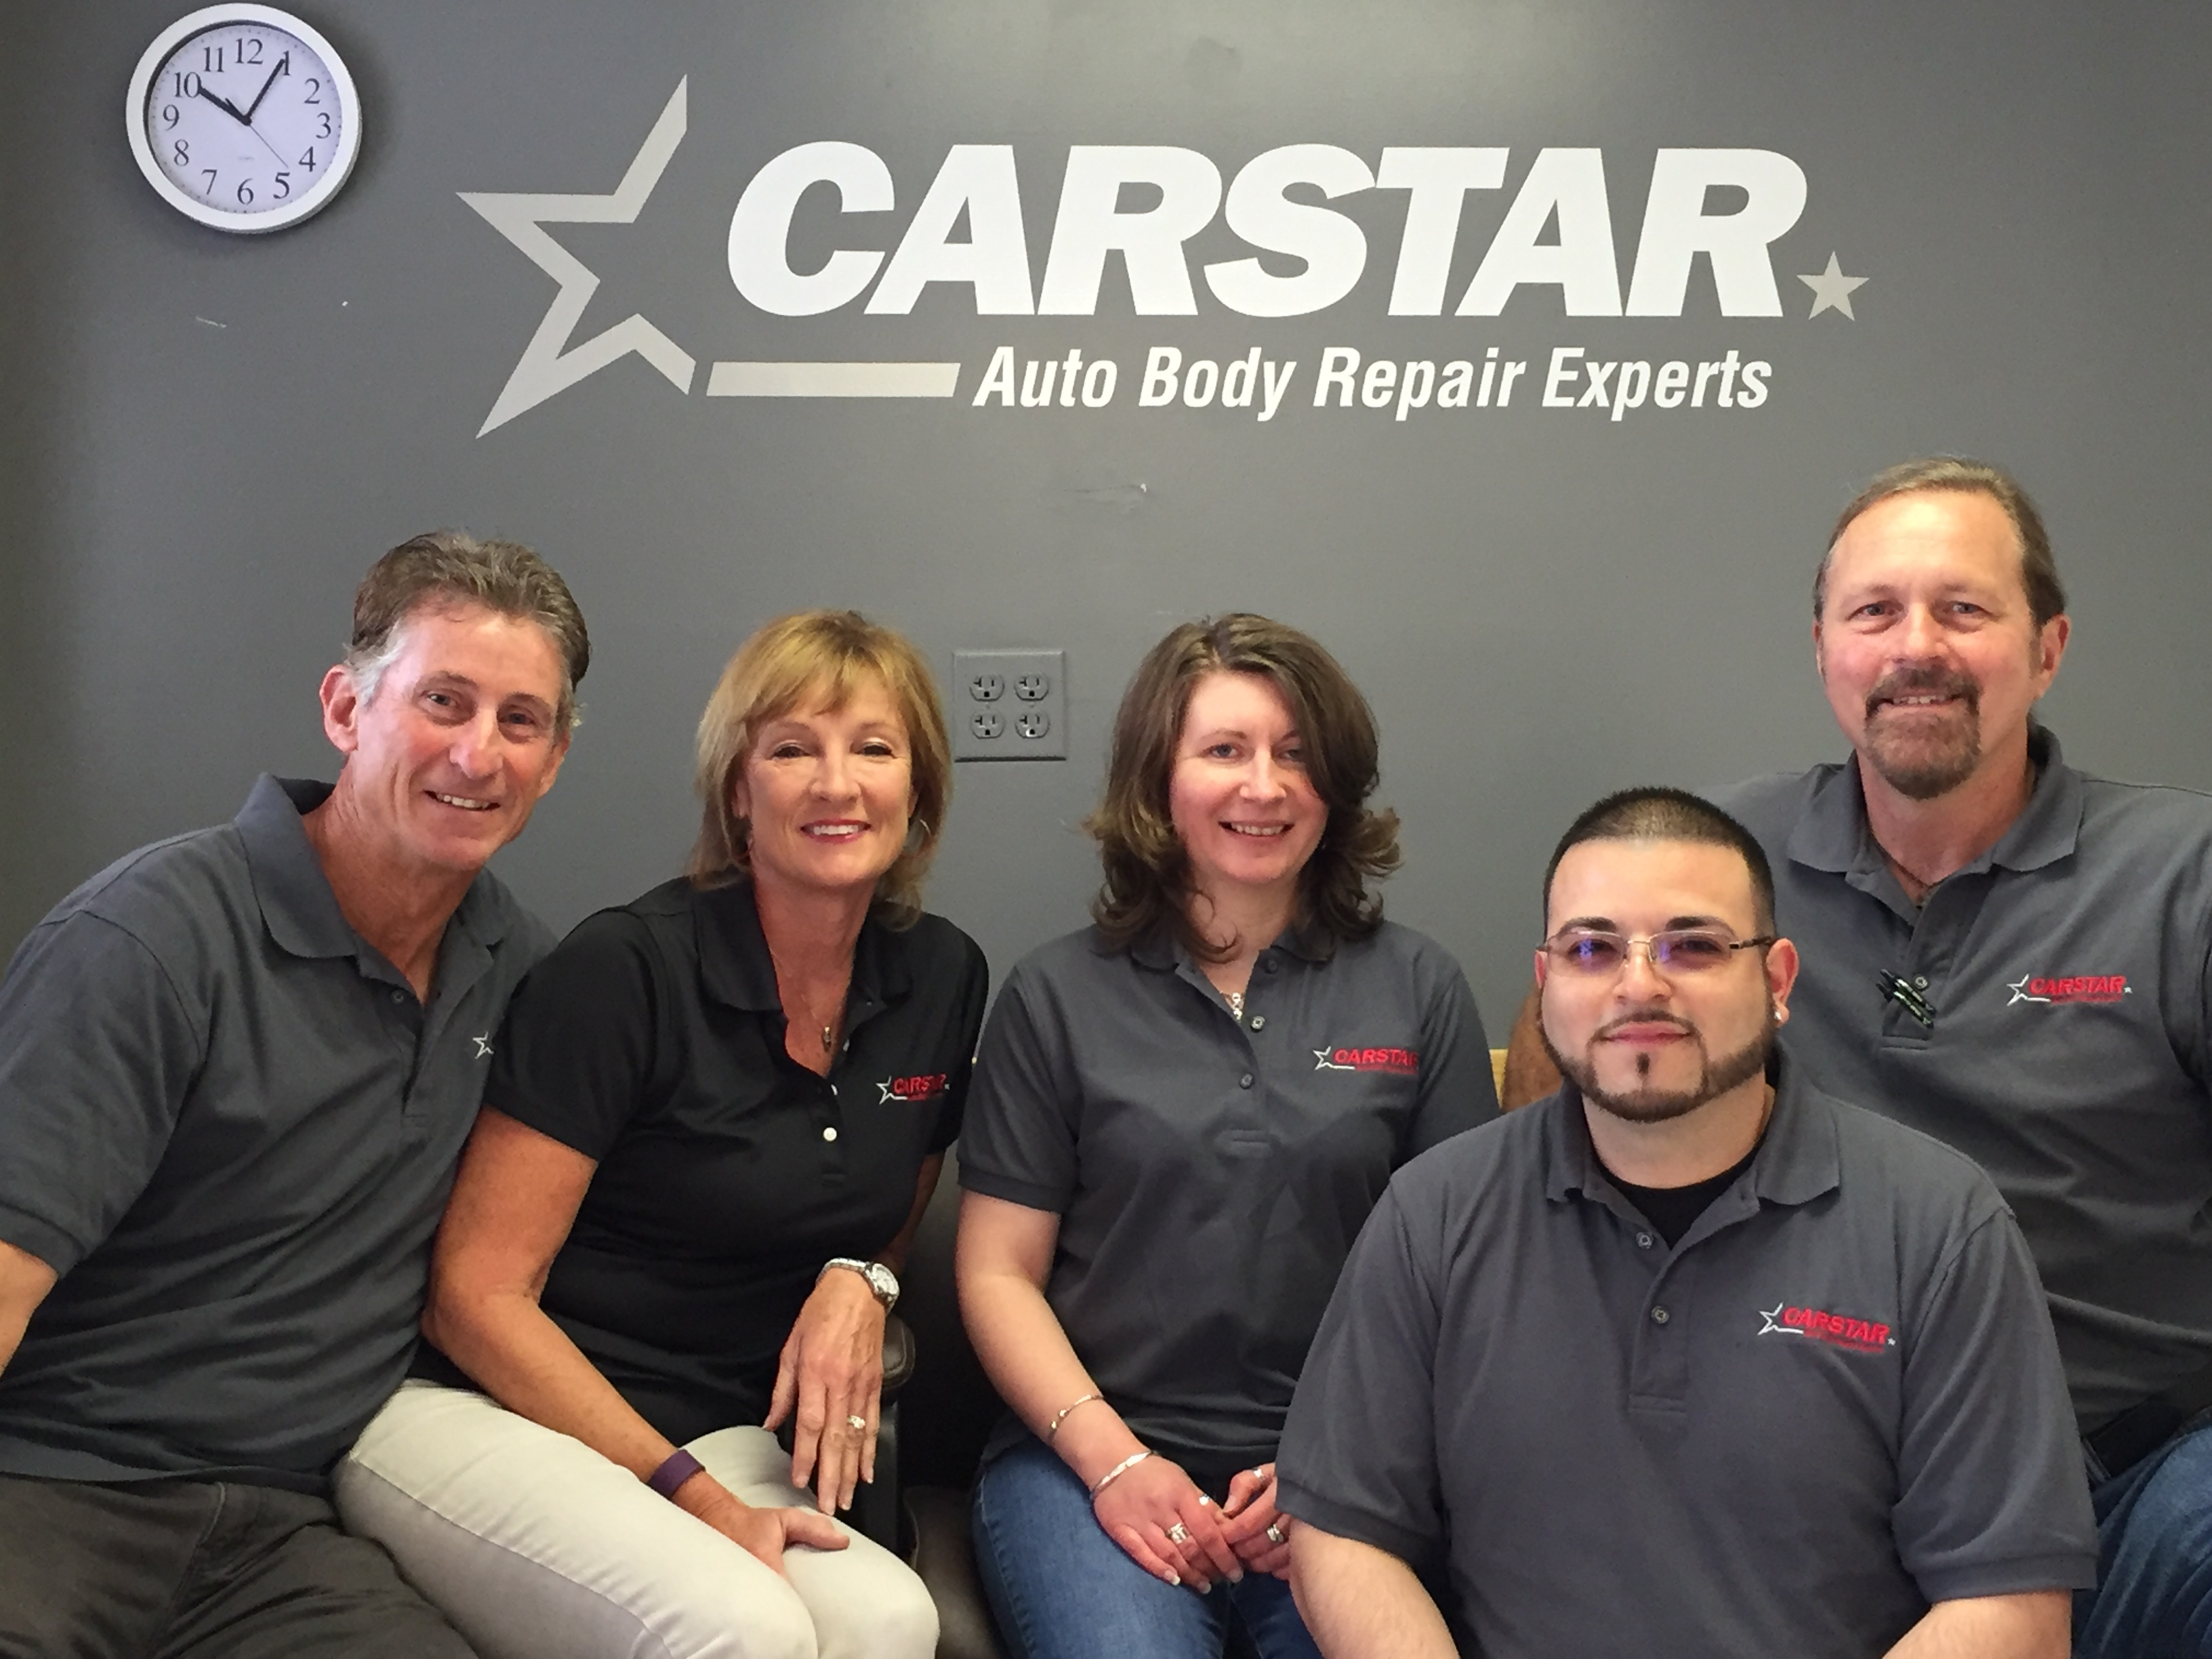 Accurate Auto Body CARSTAR: Meet the Team